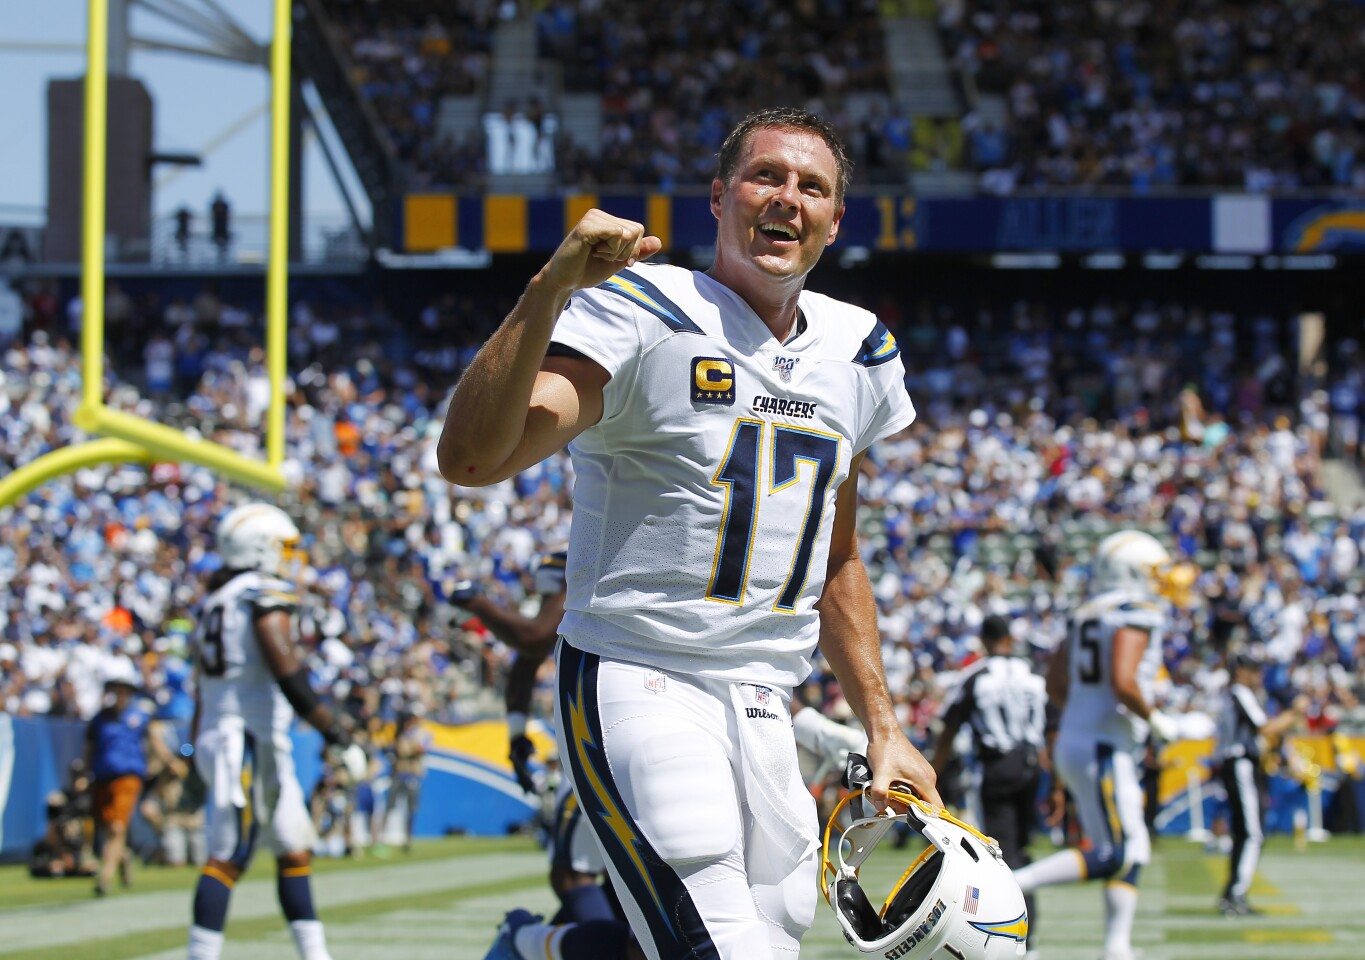 Chargers vs. Colts 9/8/19